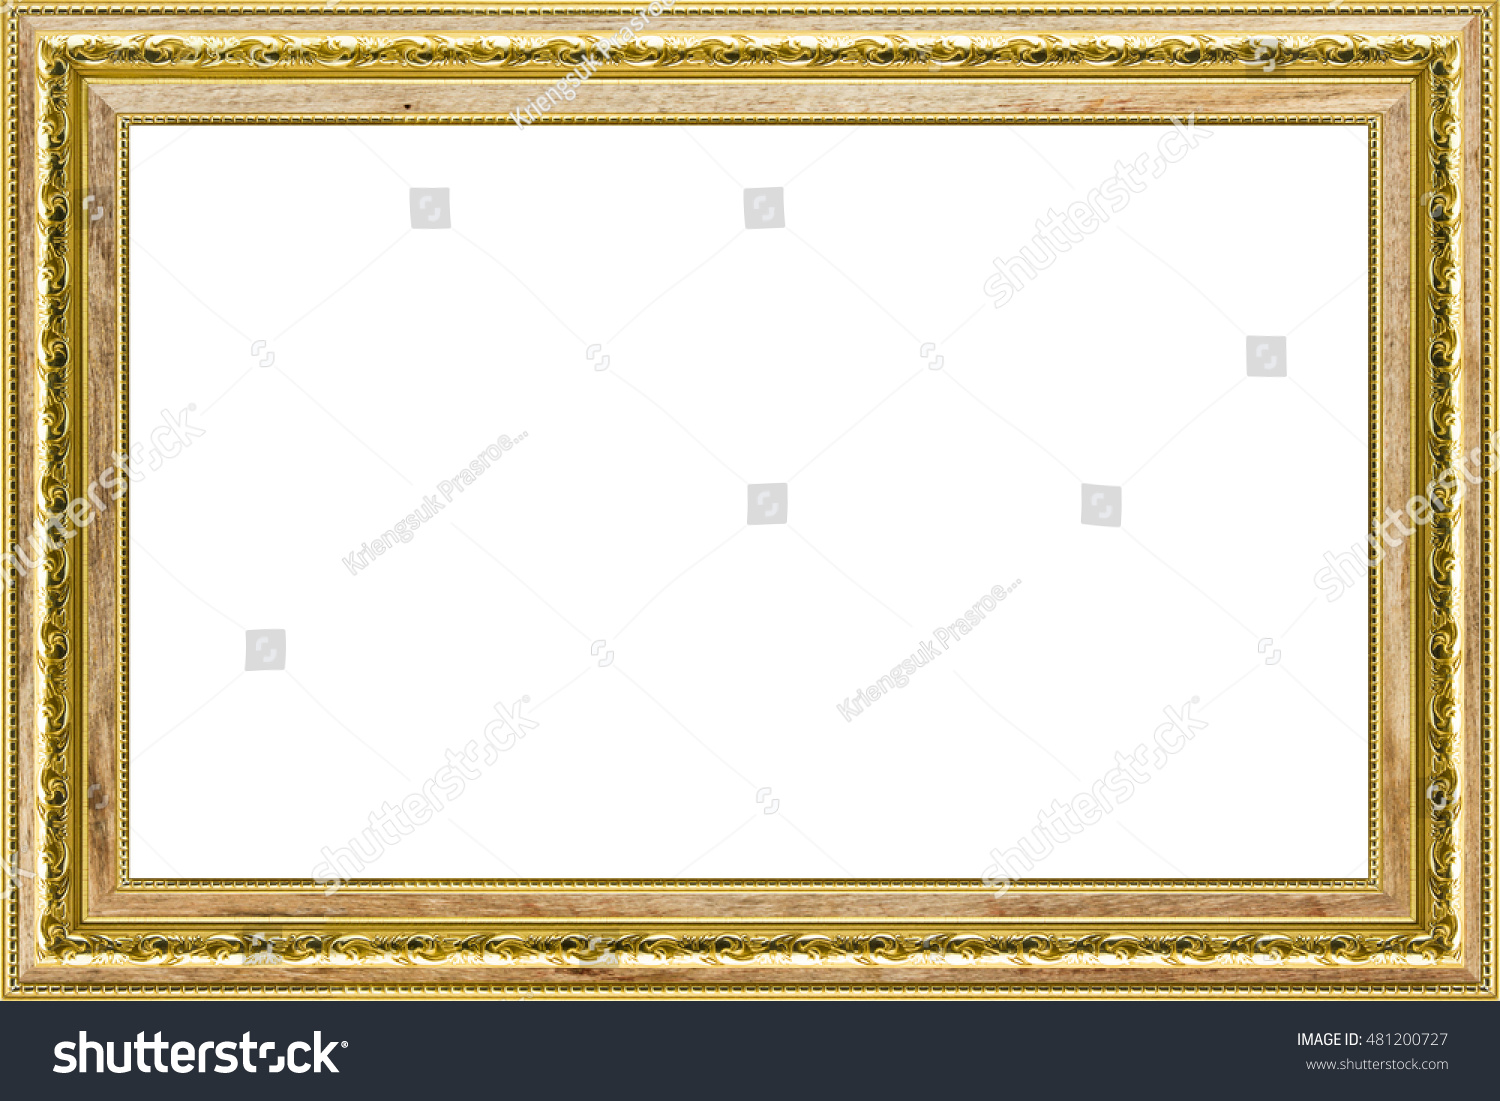 Classic Vintage Wood Gilded Frame Isolated Stock Photo (Edit Now ...